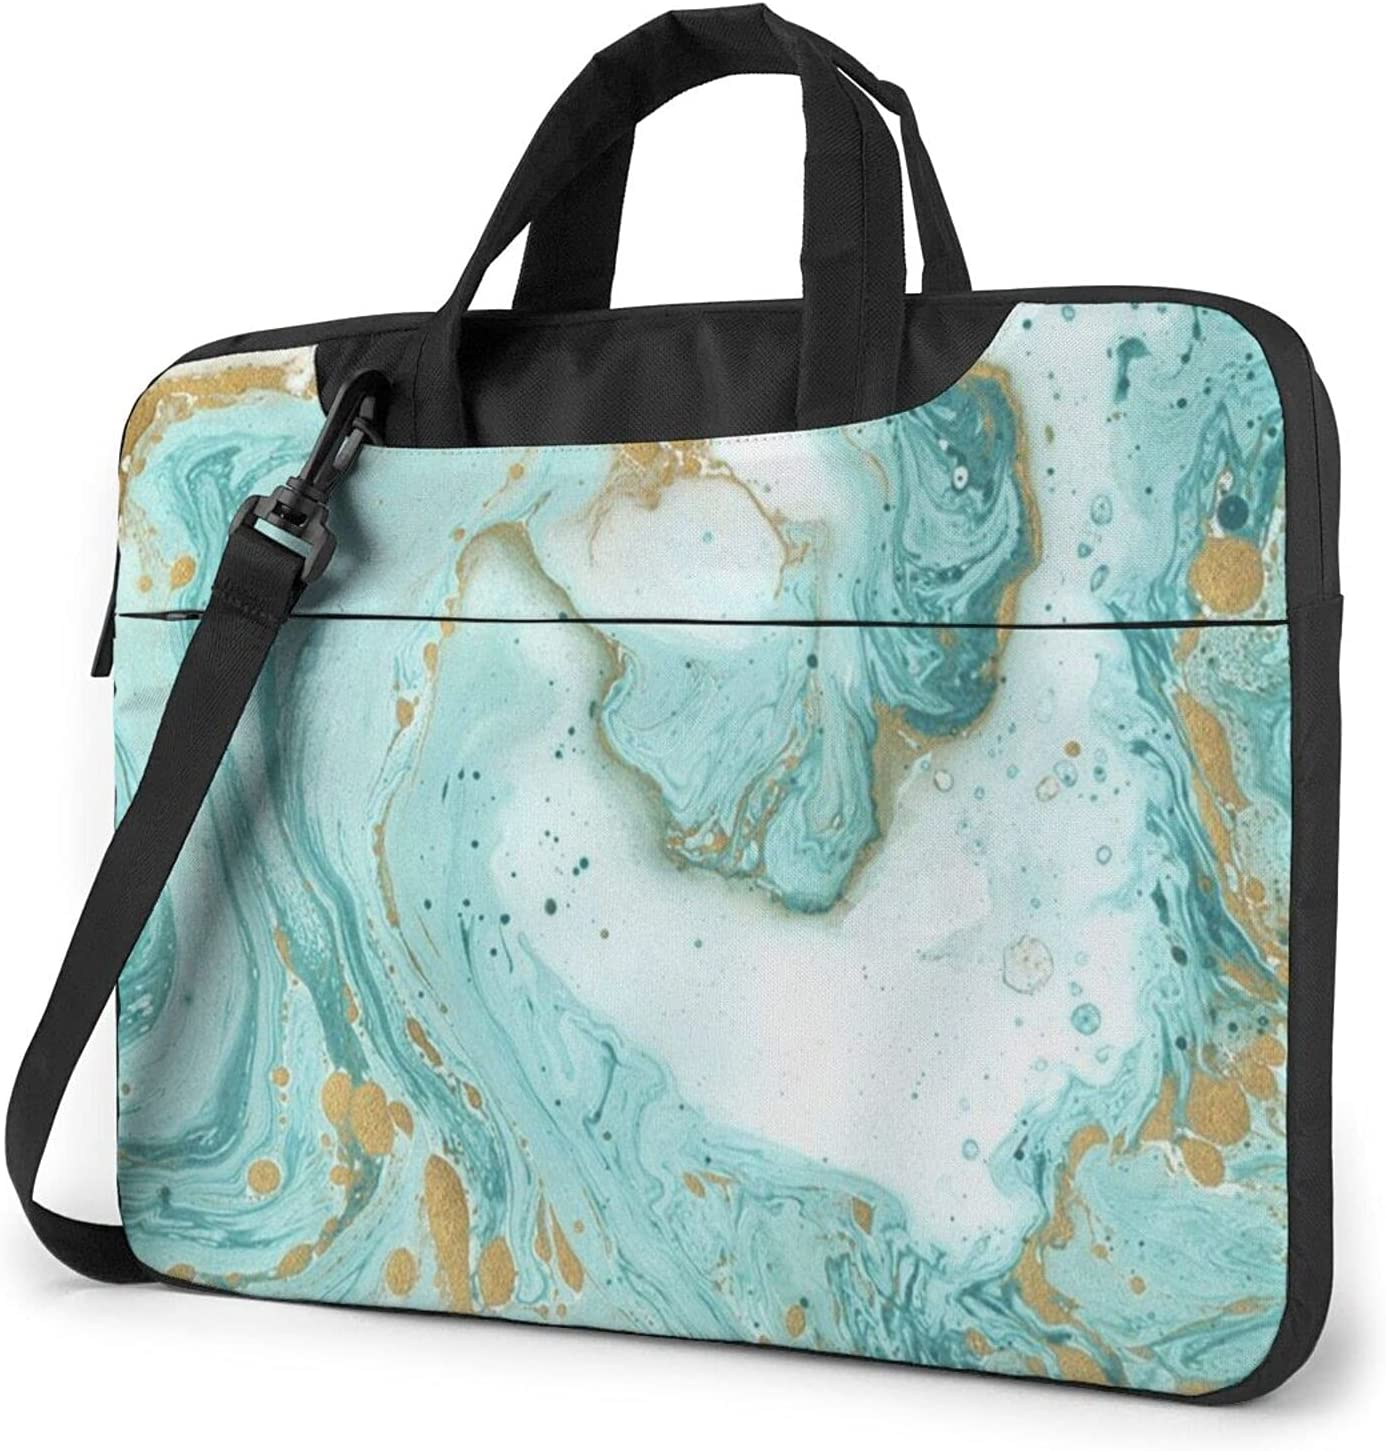 Blue Japan's largest assortment Green Marble Print Classic Should Briefcase Max 53% OFF Crossbody Slim